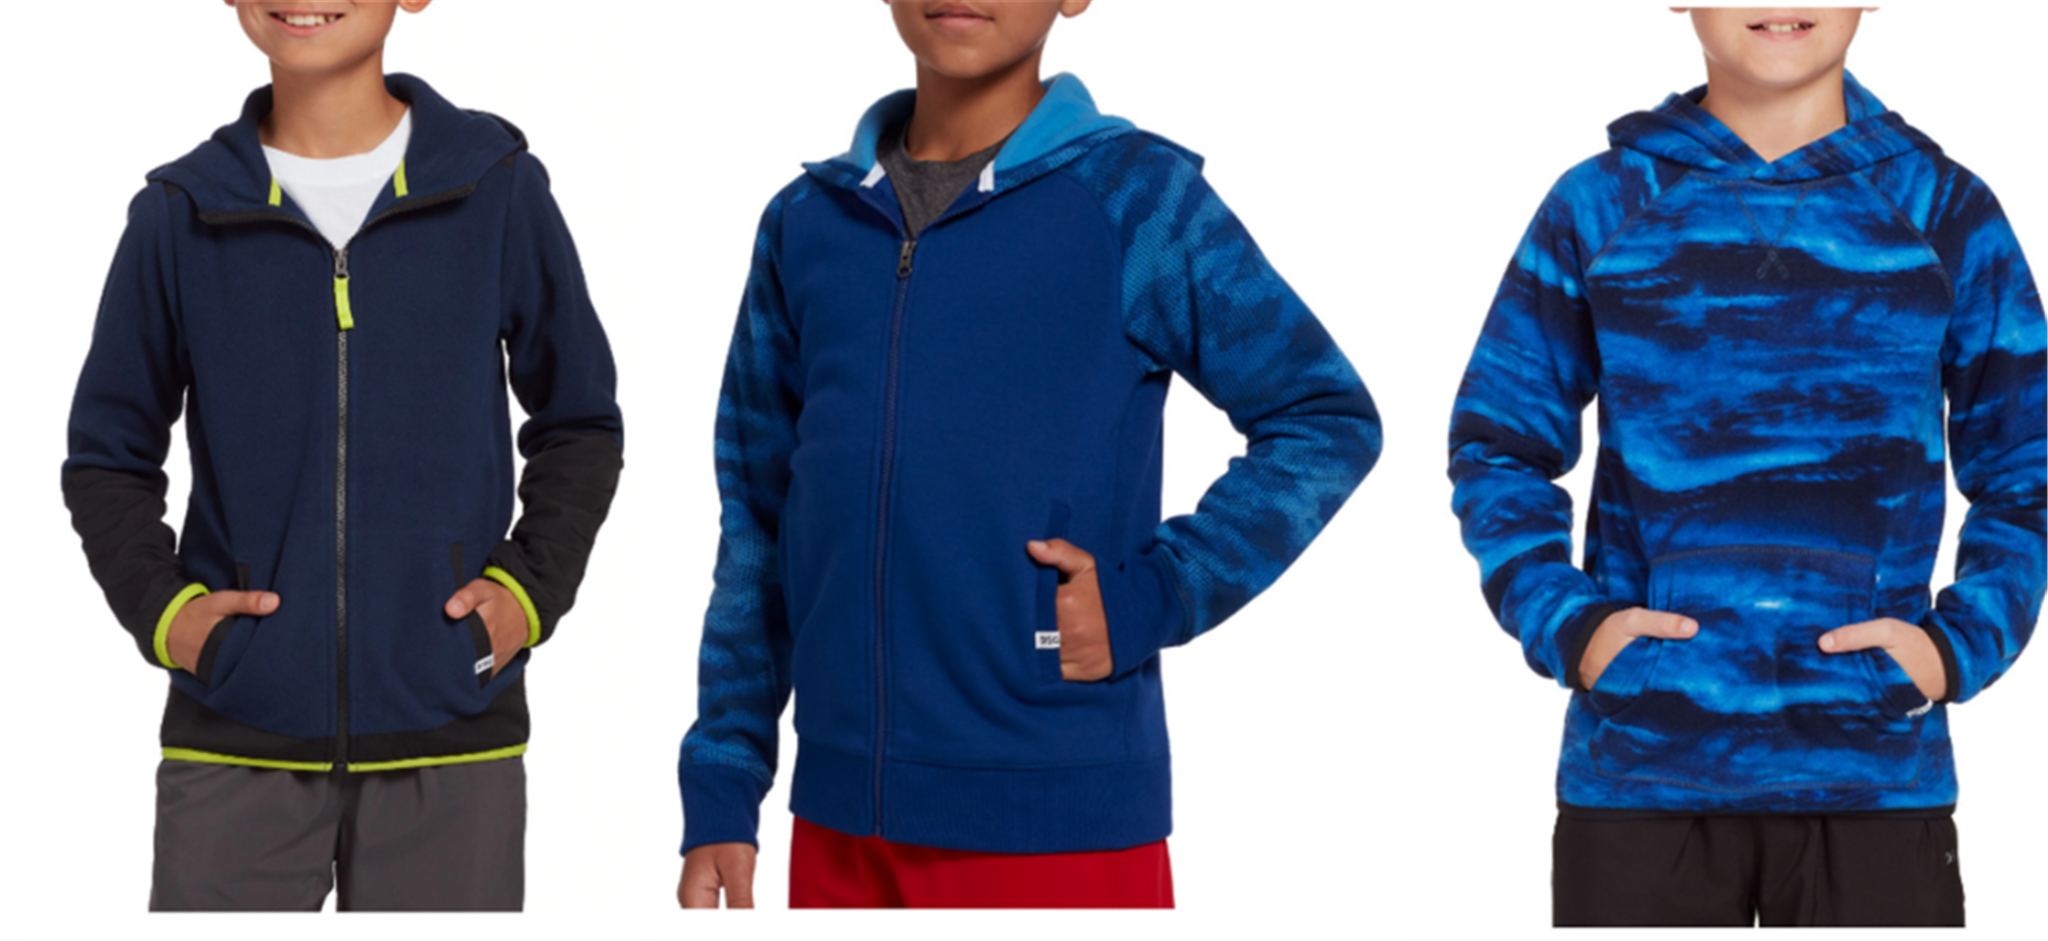 Dick's Sporting Goods – DSG Boys Fleece Hoodies Only $5.00 Each + Free Store Pickup!